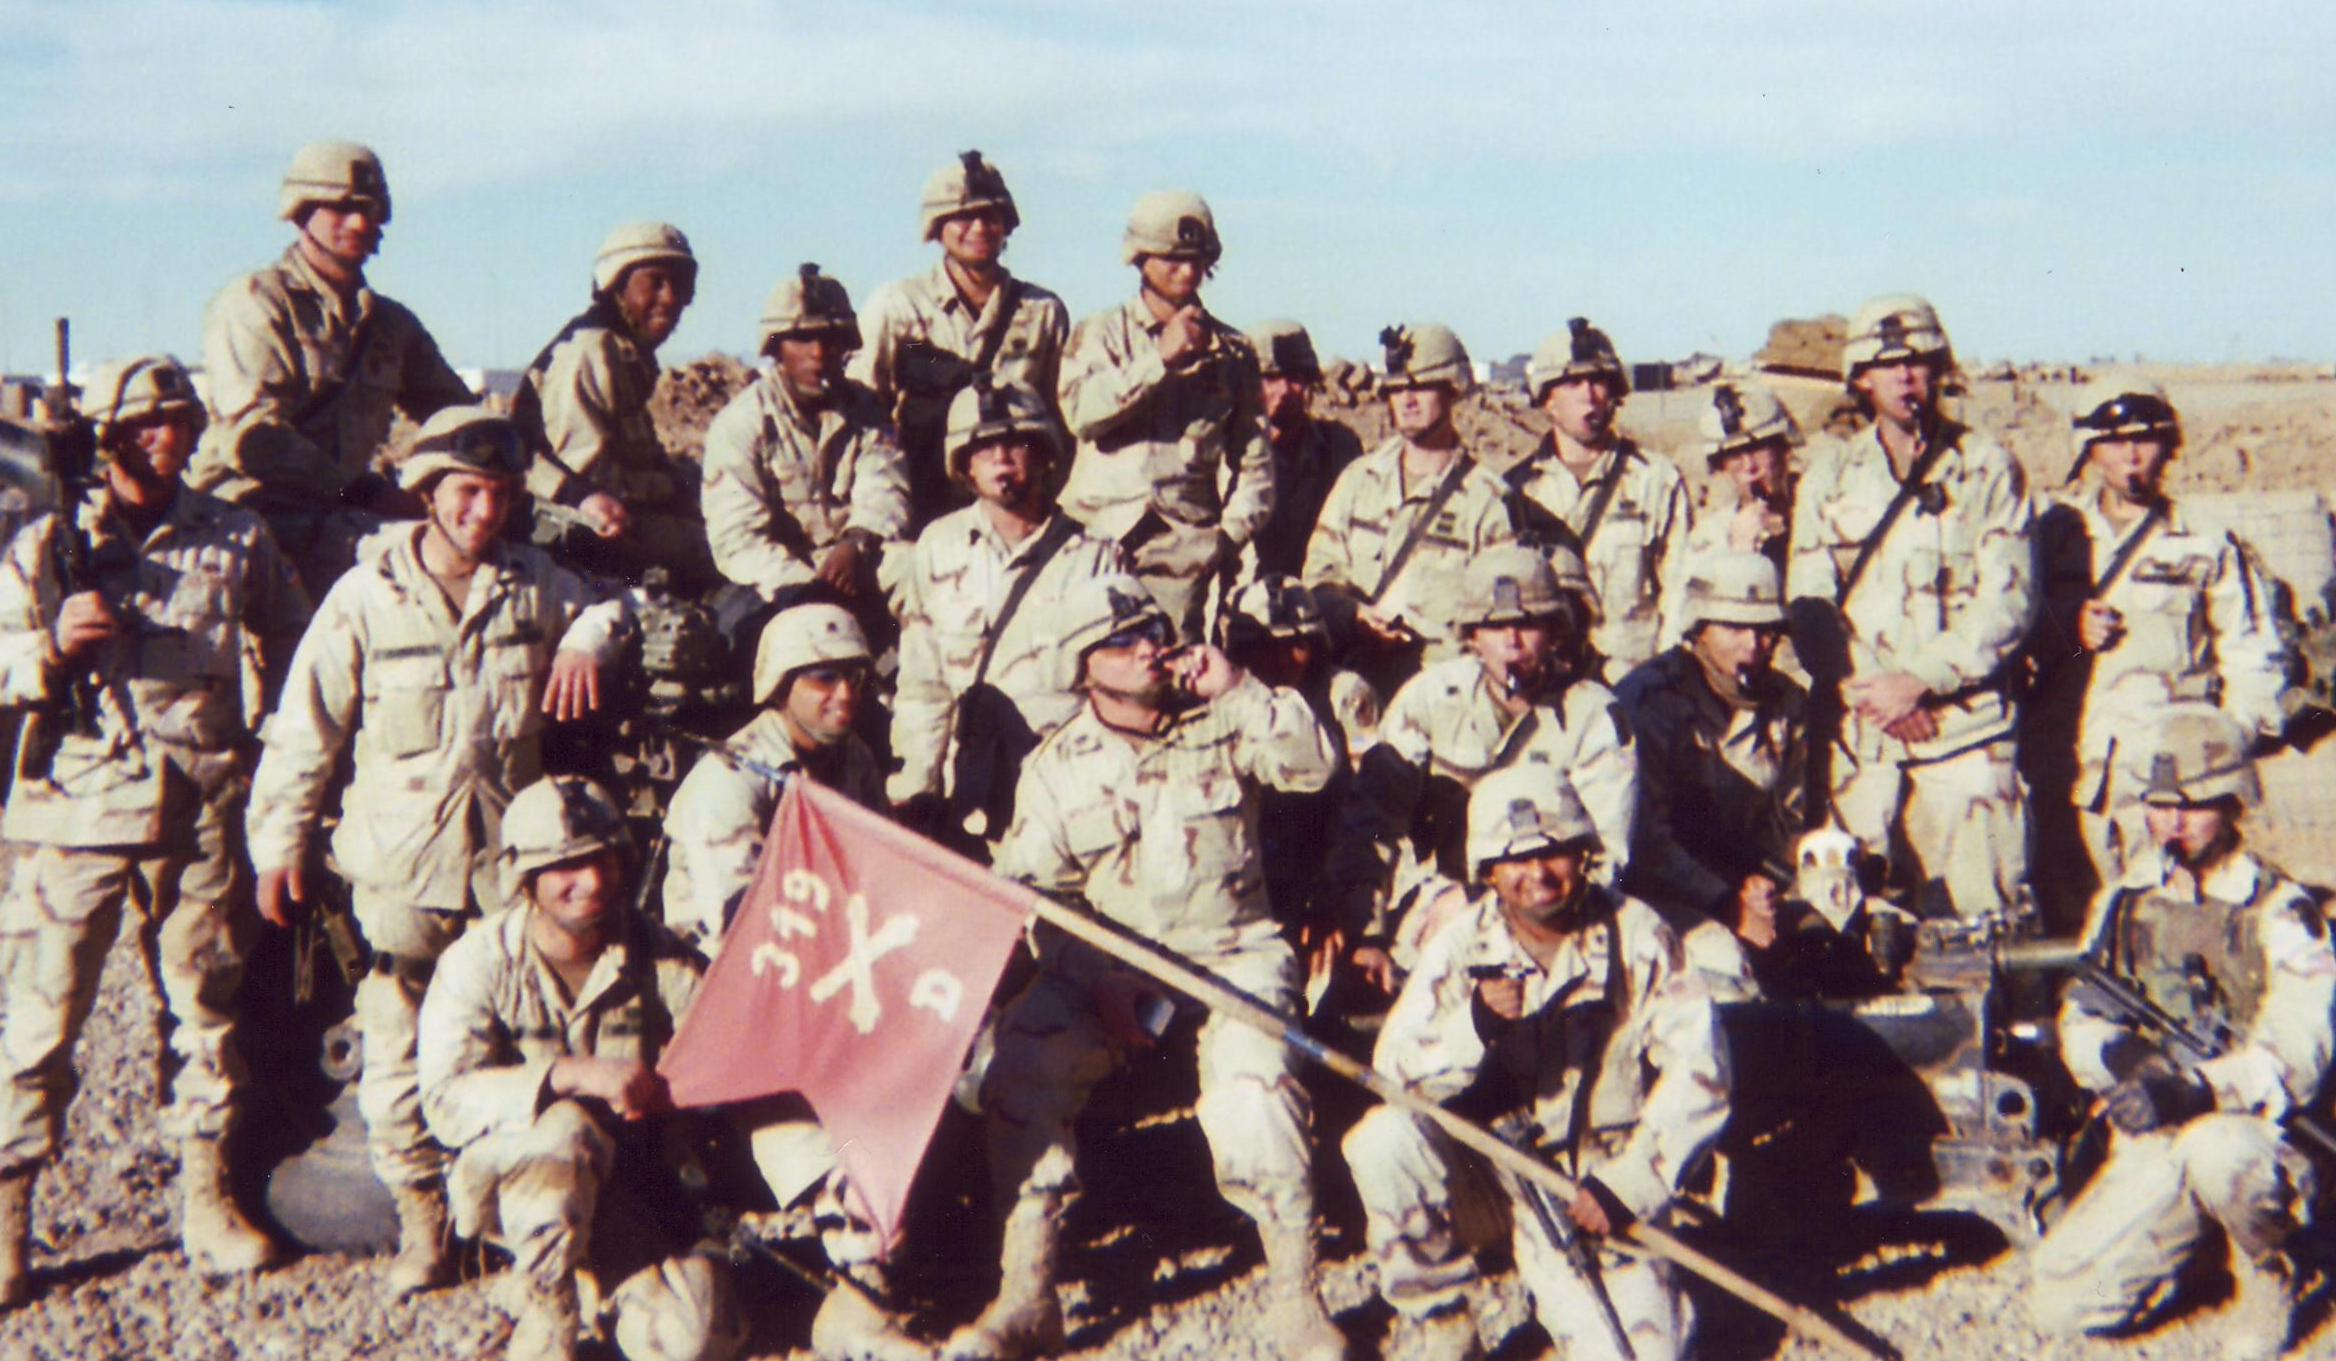 173rd Army Airborne